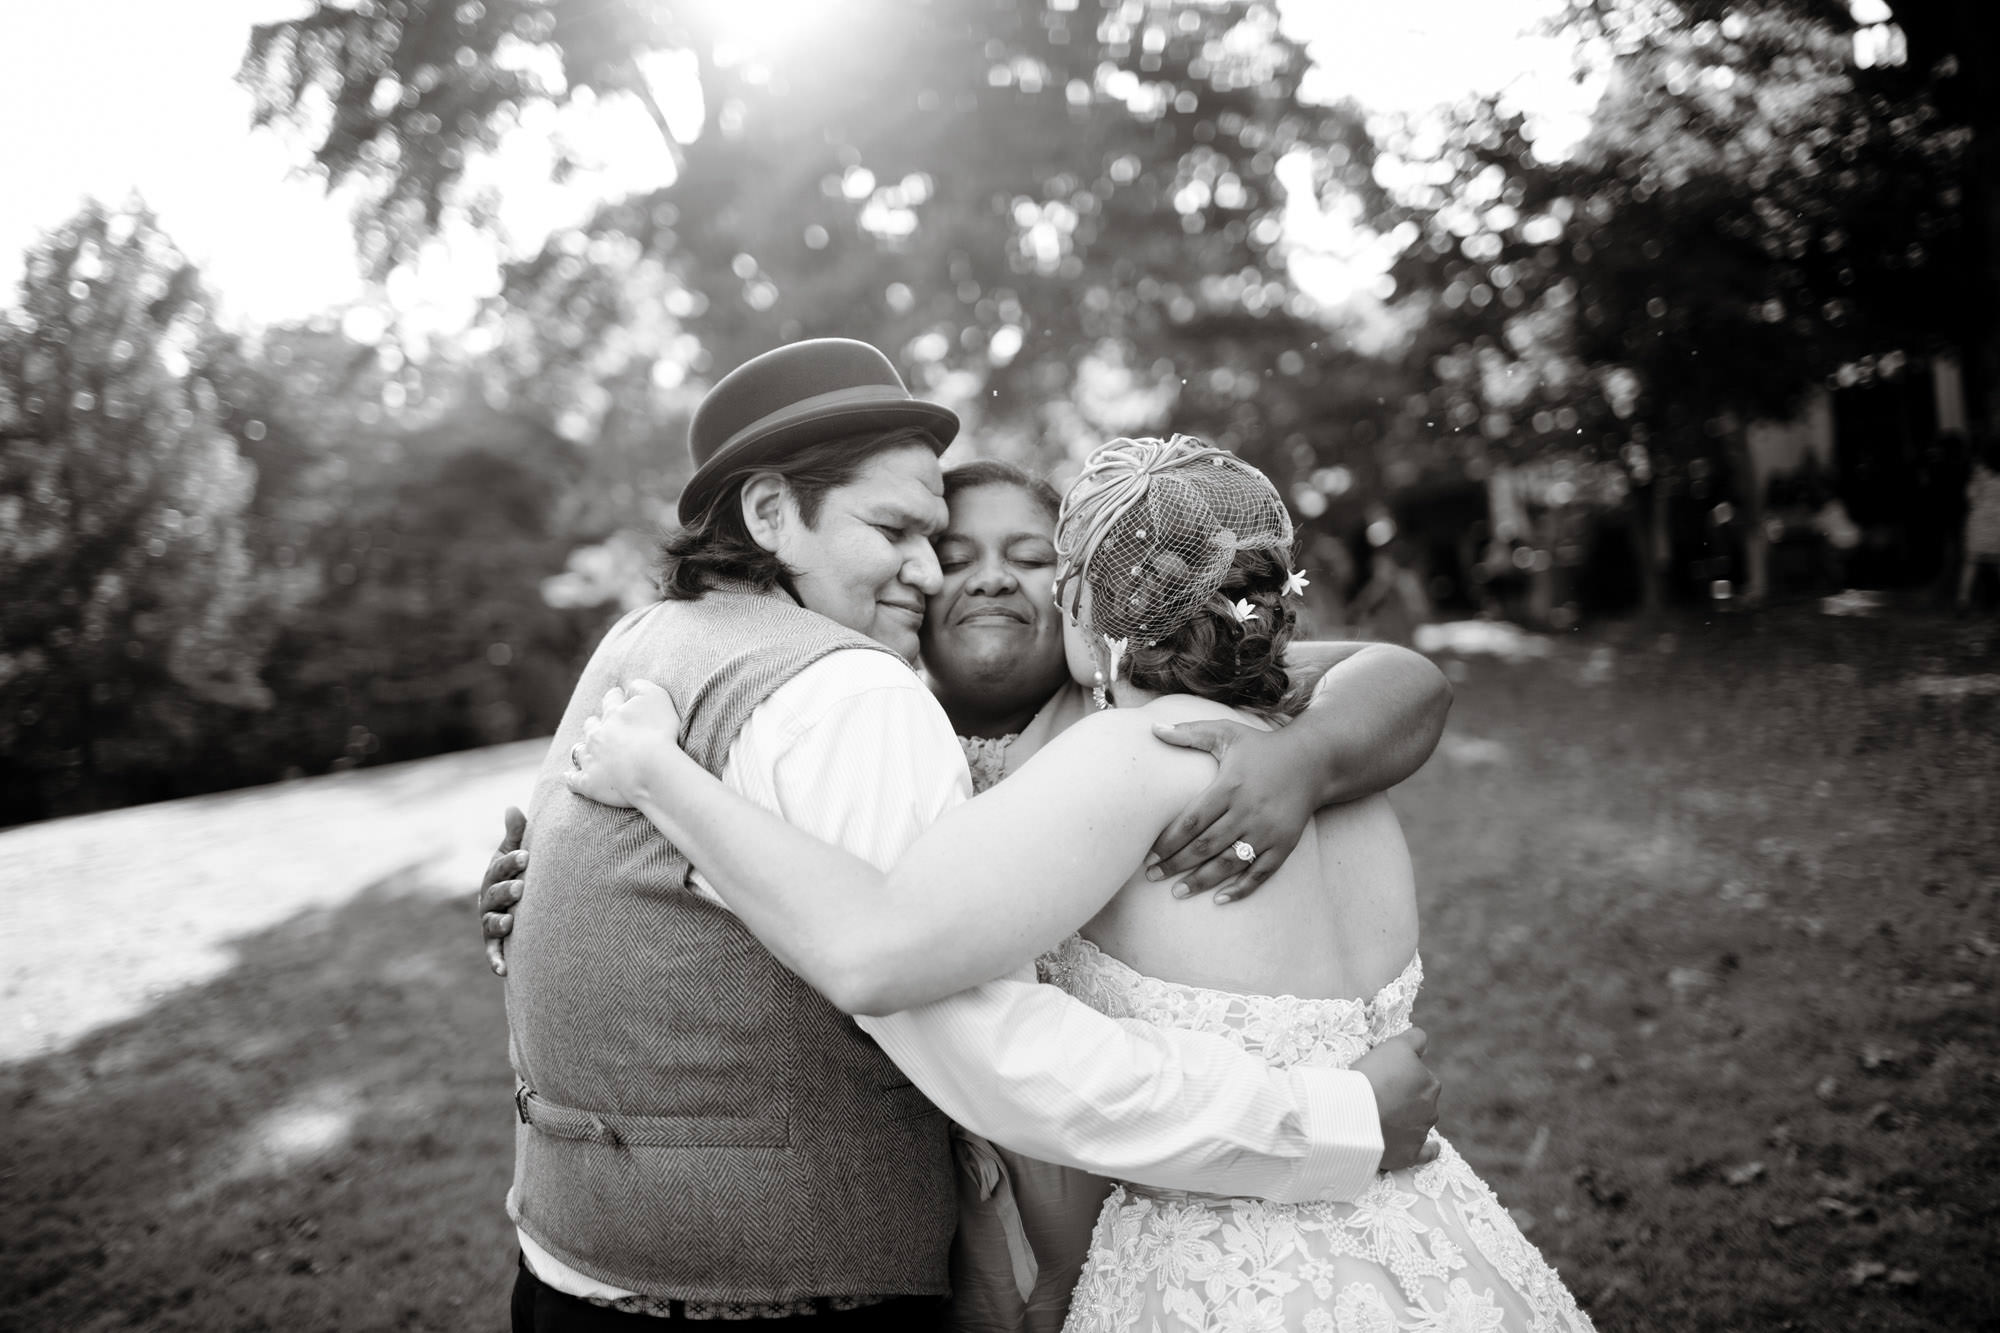 The couple receives a hug on their wedding day at Woodend Sanctuary and Mansion.